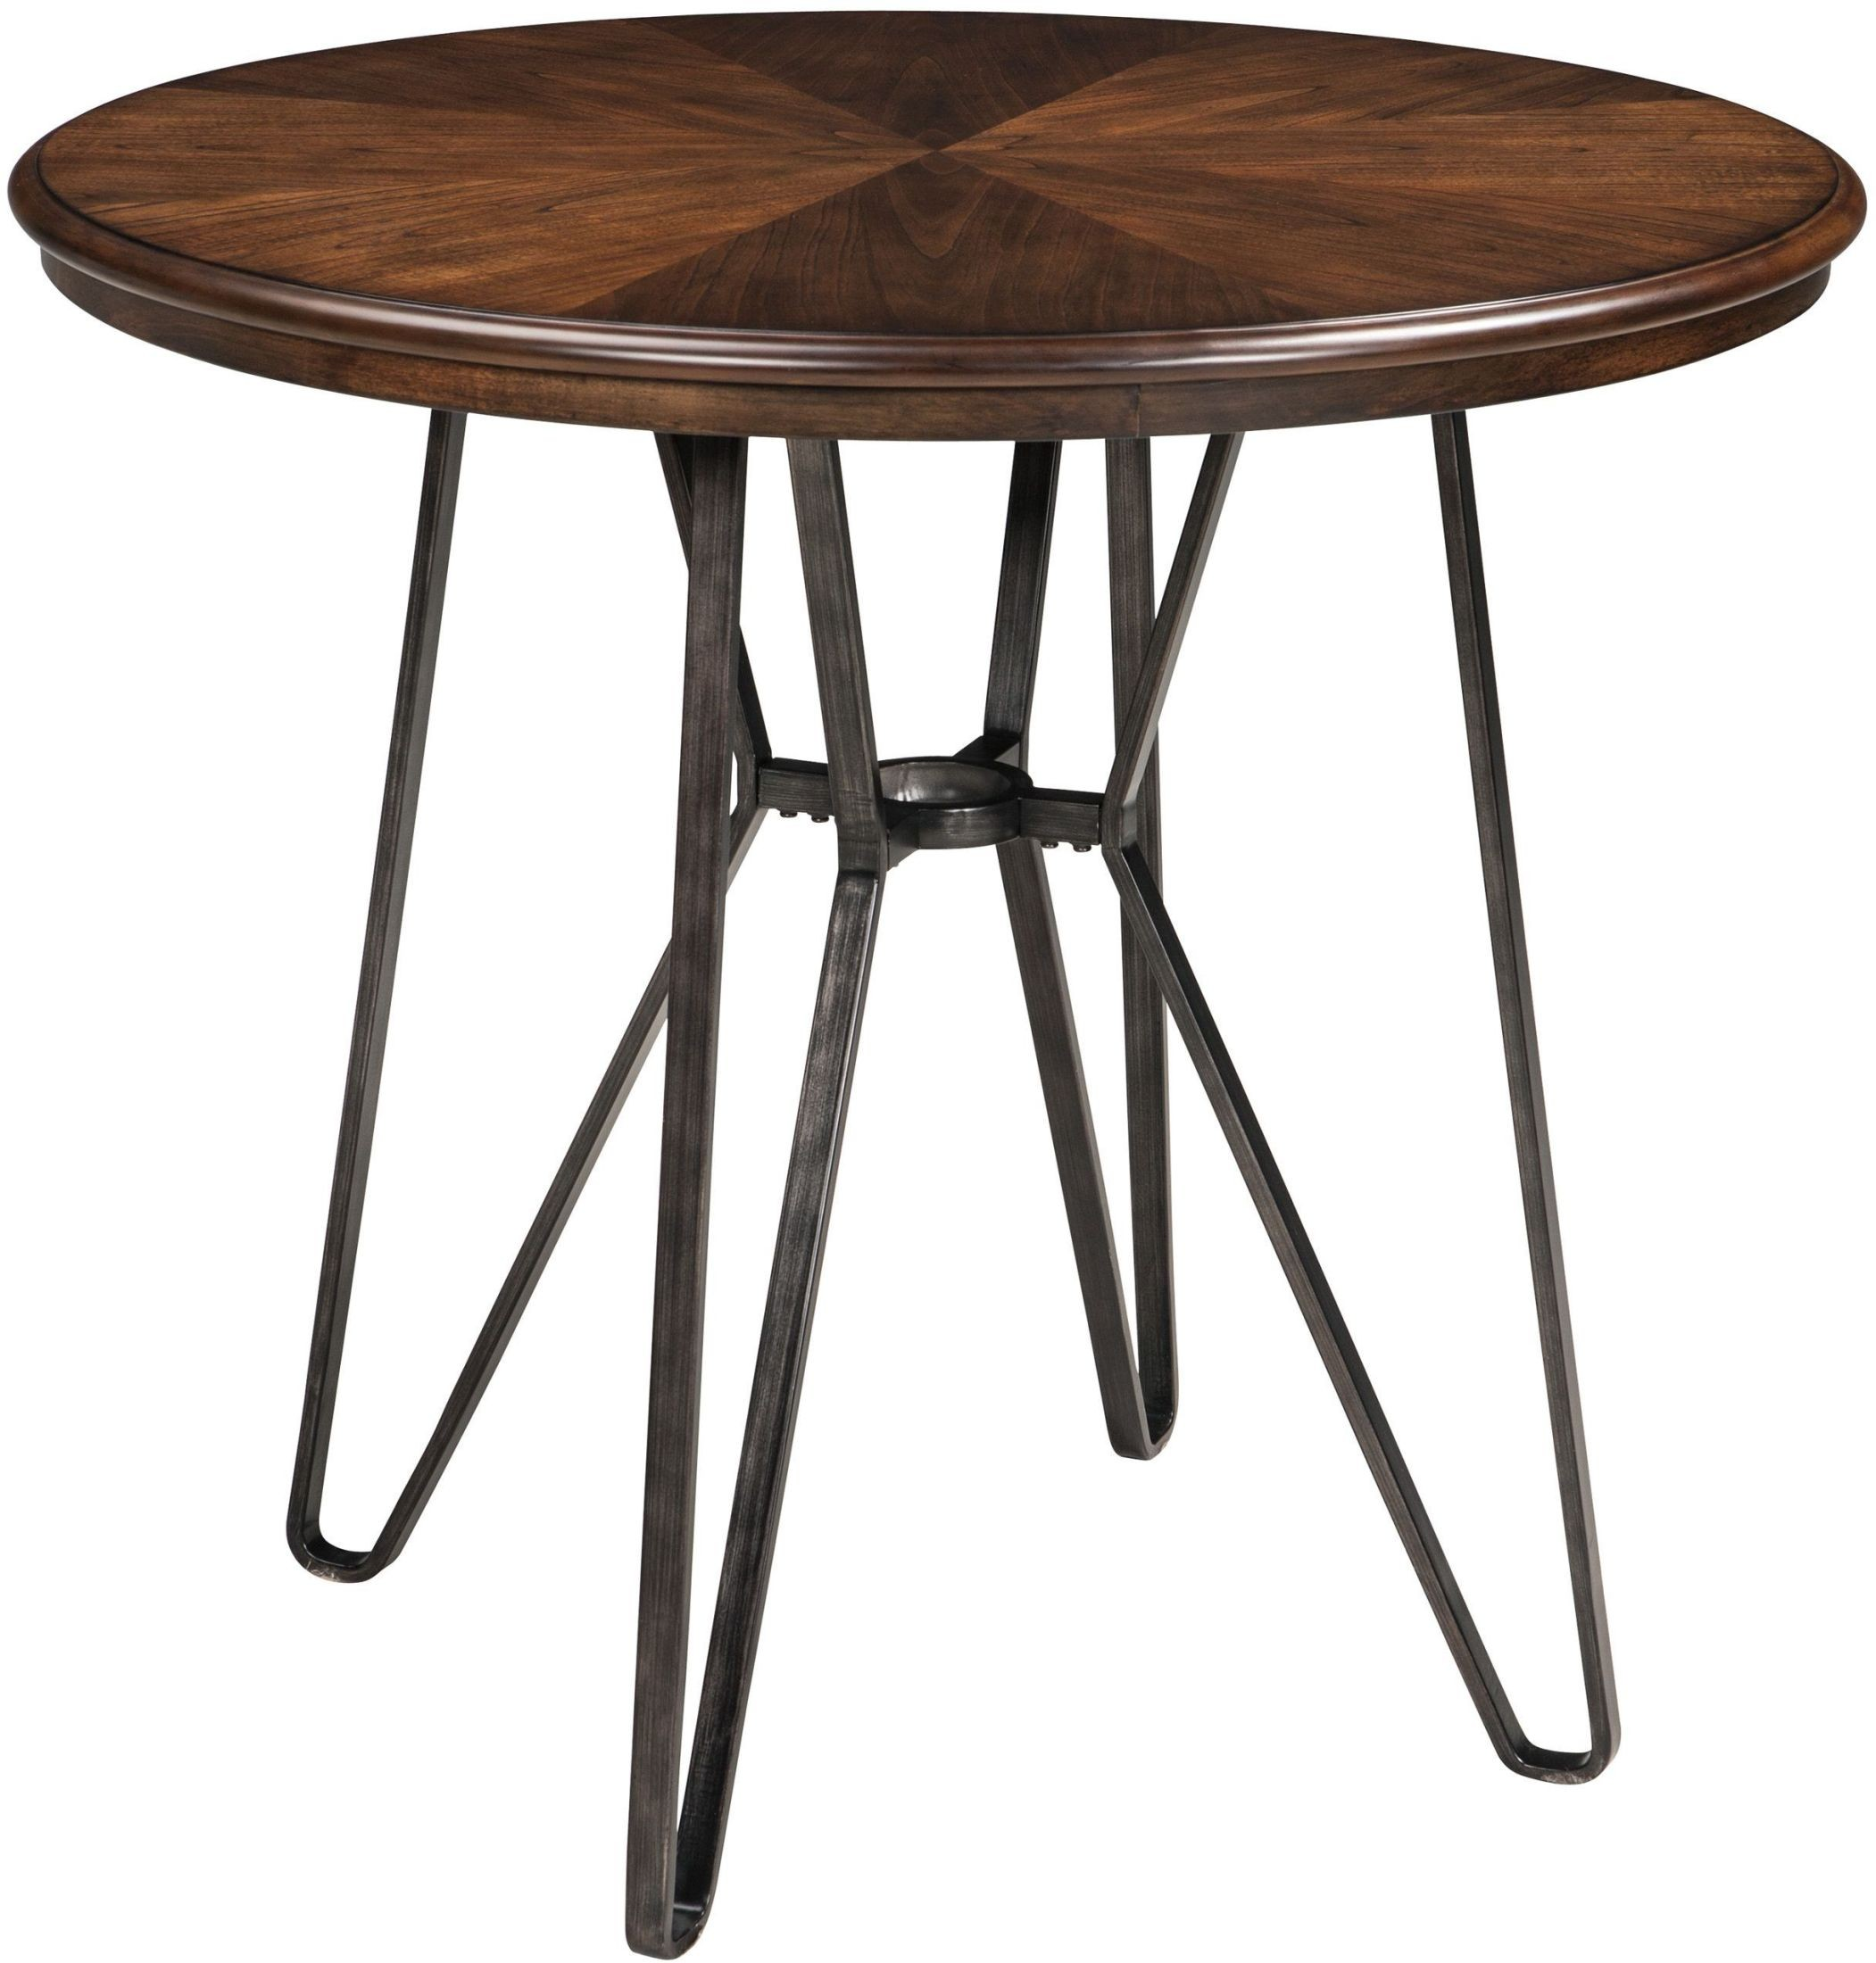 Illinois Modern Two Tone Large Round Dining Table With 8: Centiar Two-Tone Brown Round Counter Height Dining Table